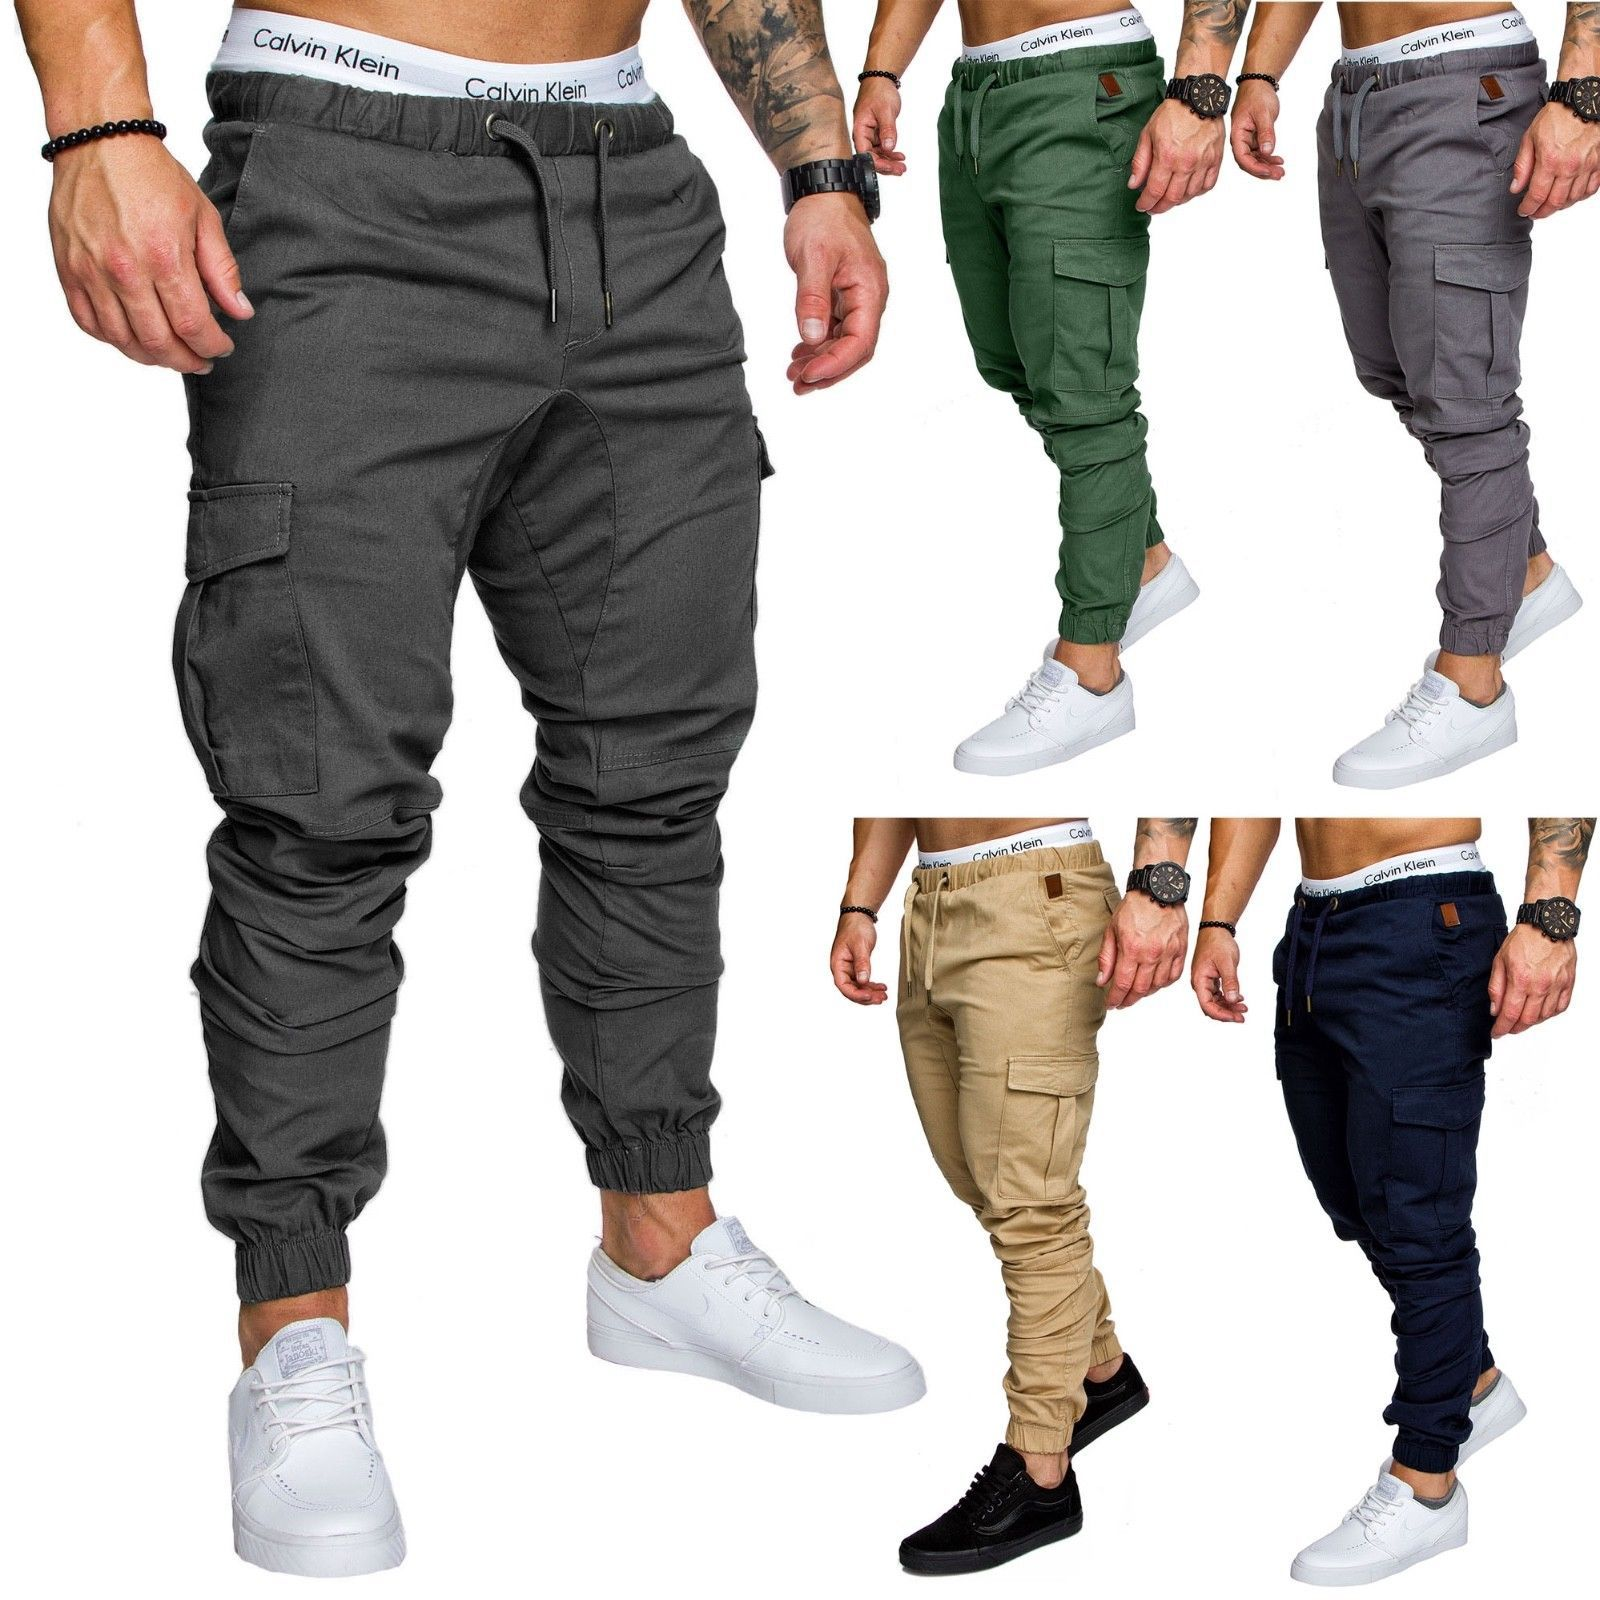 Special For 2018 Hot Selling Workwear Multi-pockets Trousers Men Woven Fabric Casual Pants Ankle Banded Pants Men's